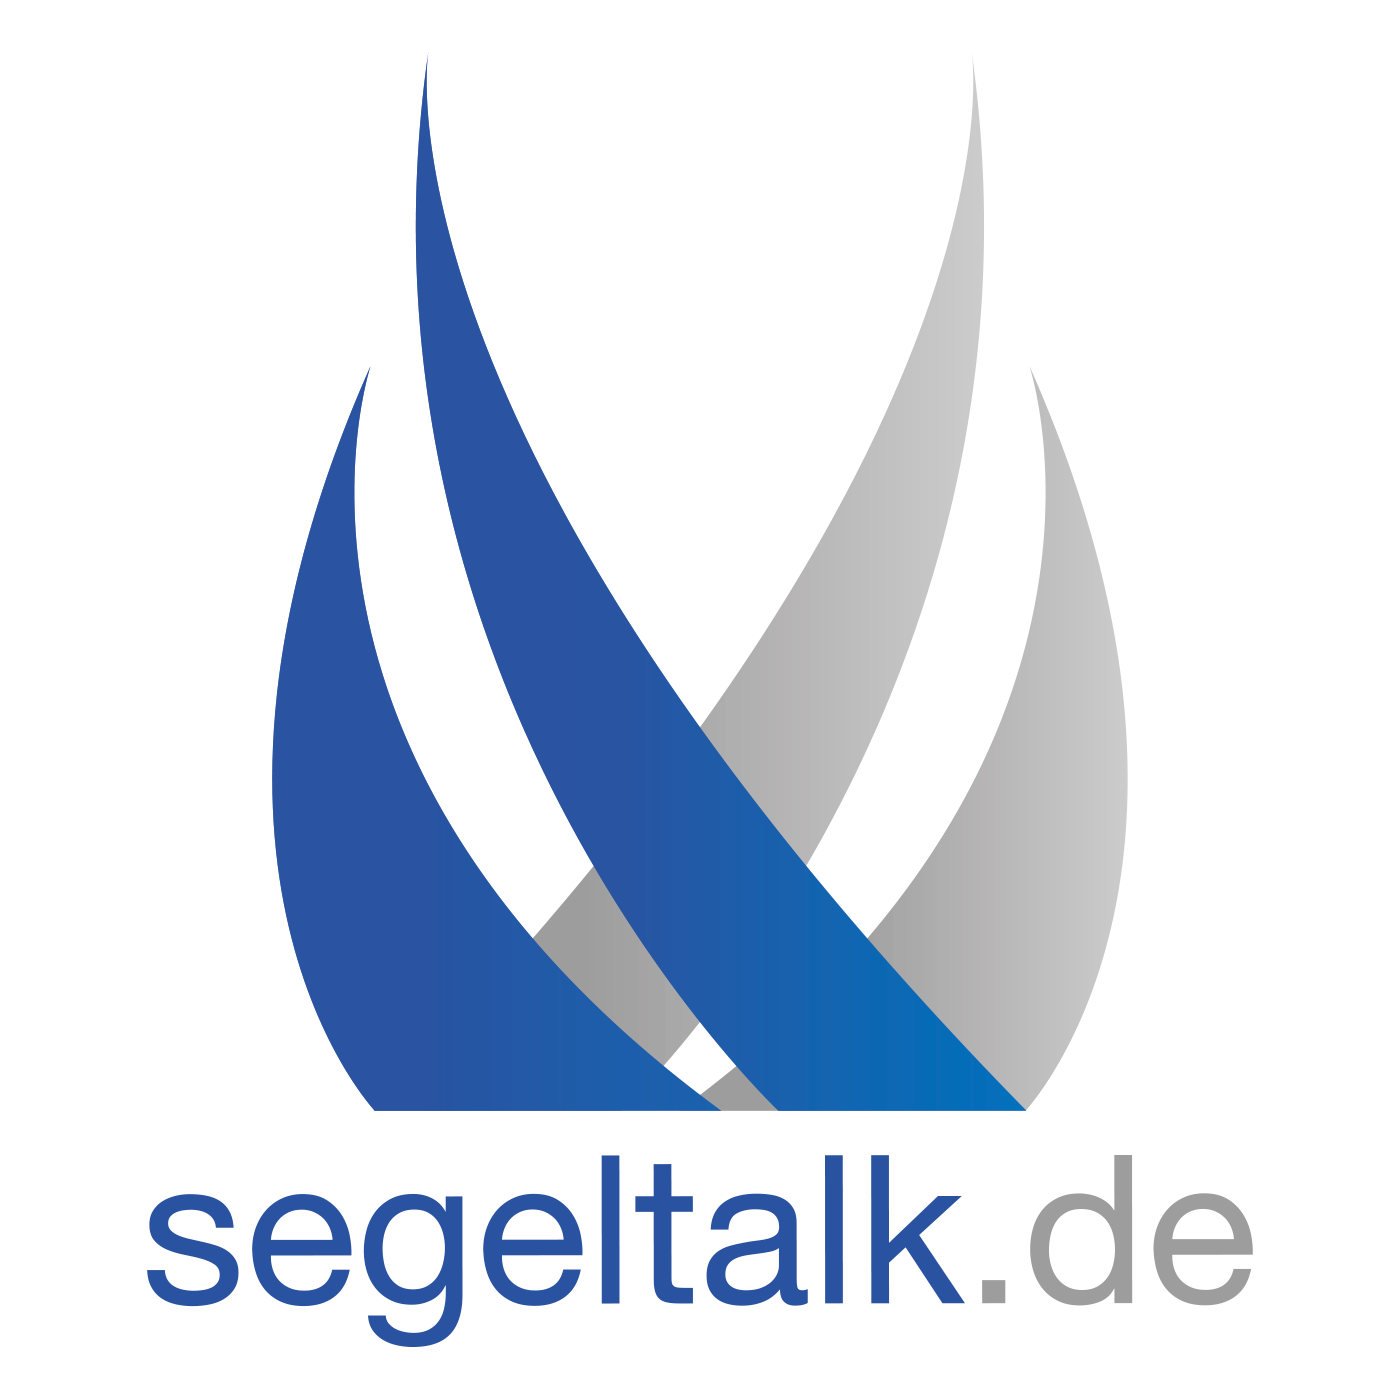 Segeltalk.de (MP3 Feed)